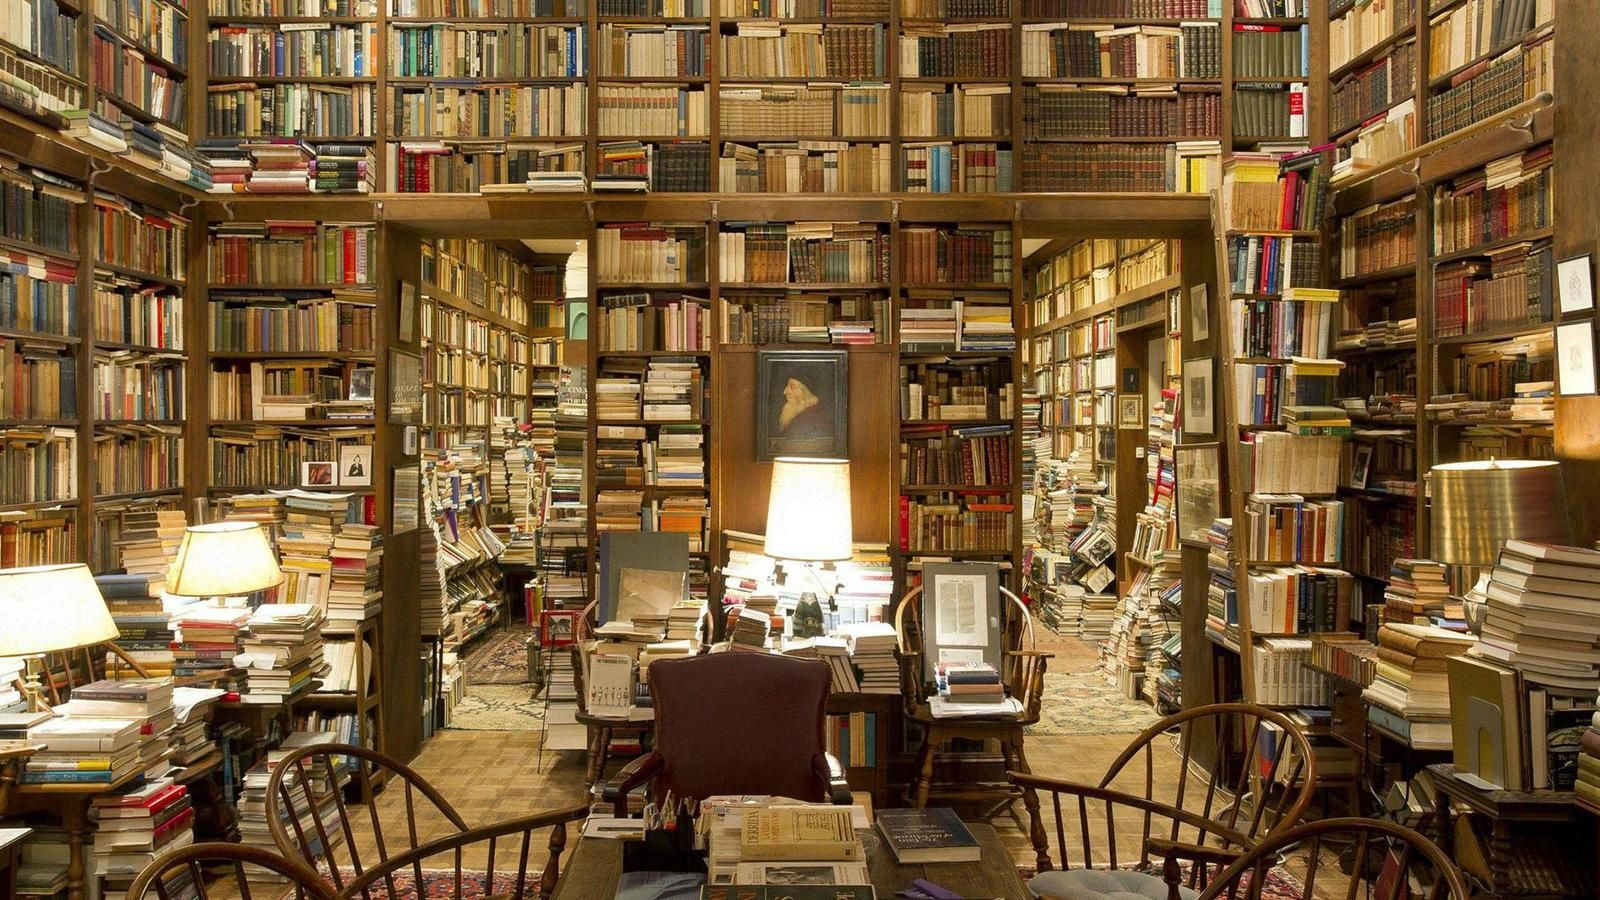 Piles-of-books-in-a-private-college-library_www.LuxuryWallpapers.net_